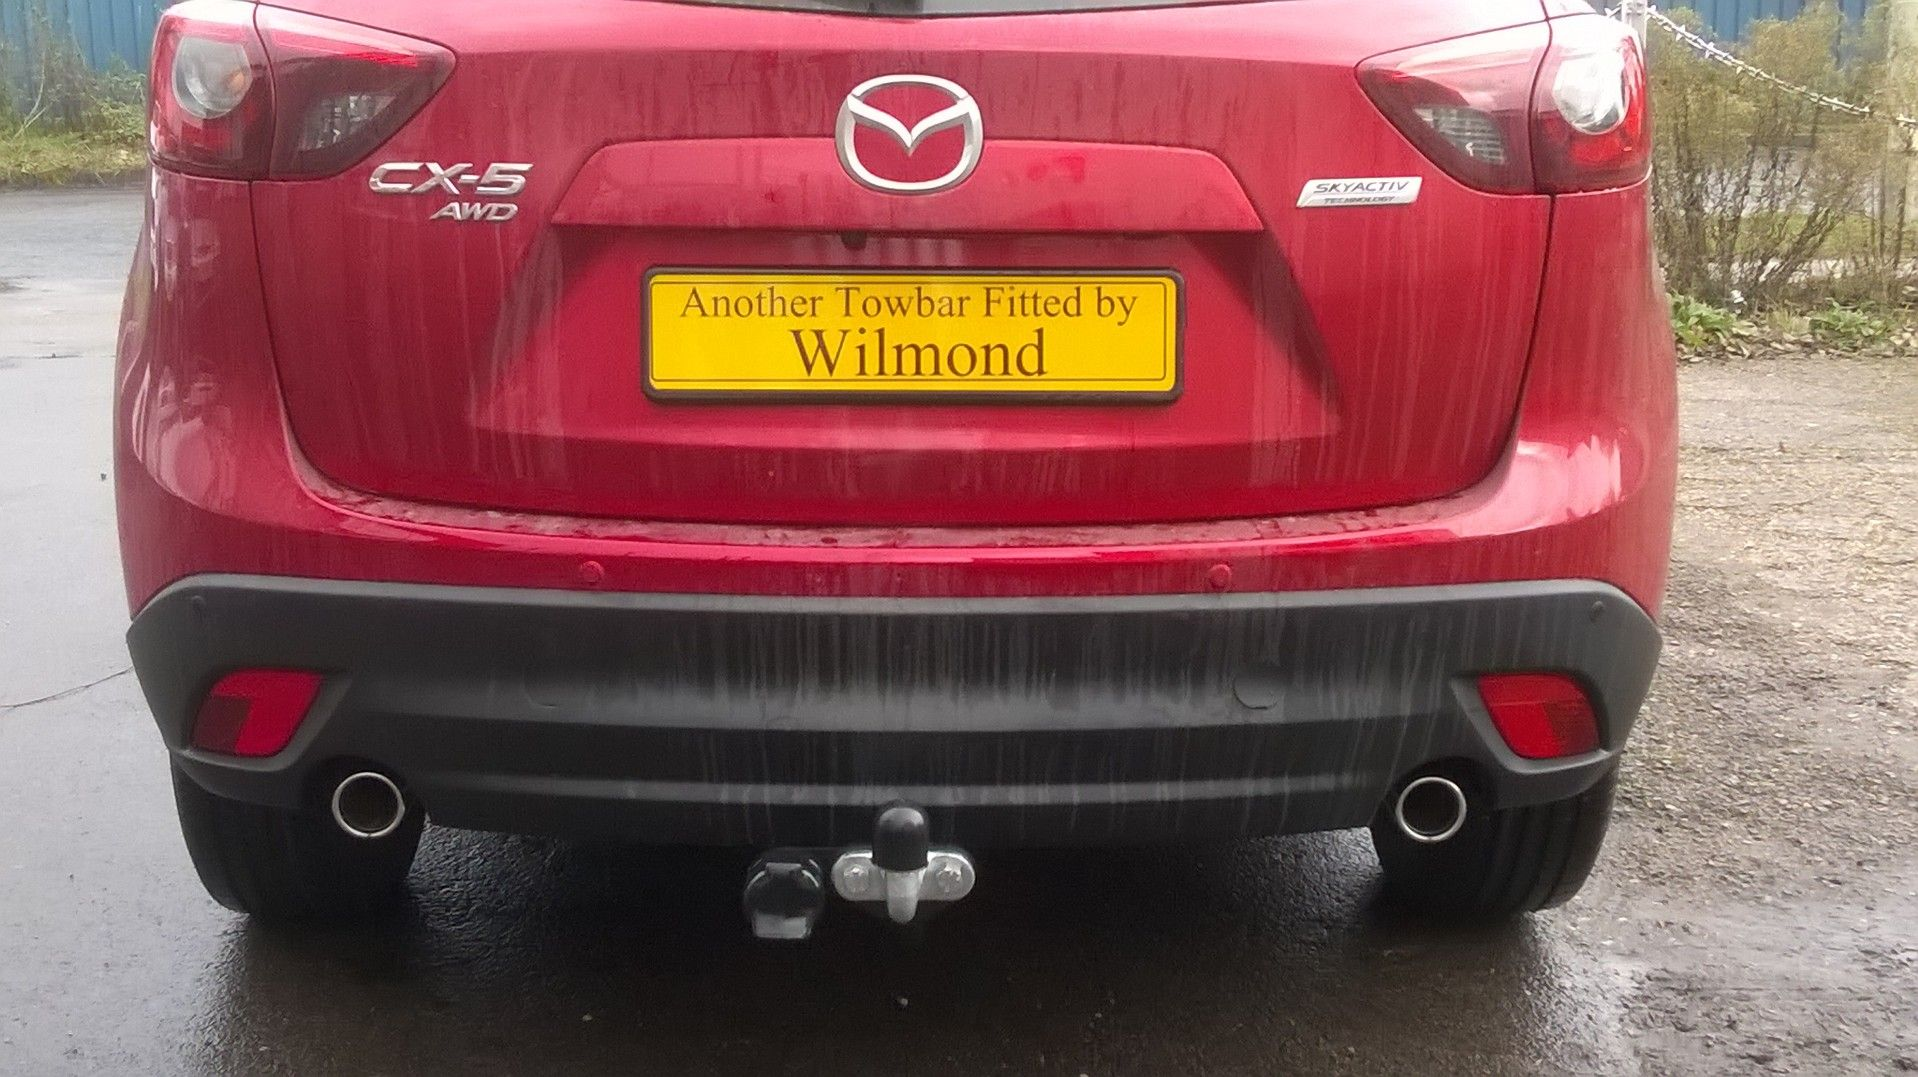 Mazda CX5 with Witter swan neck towbar